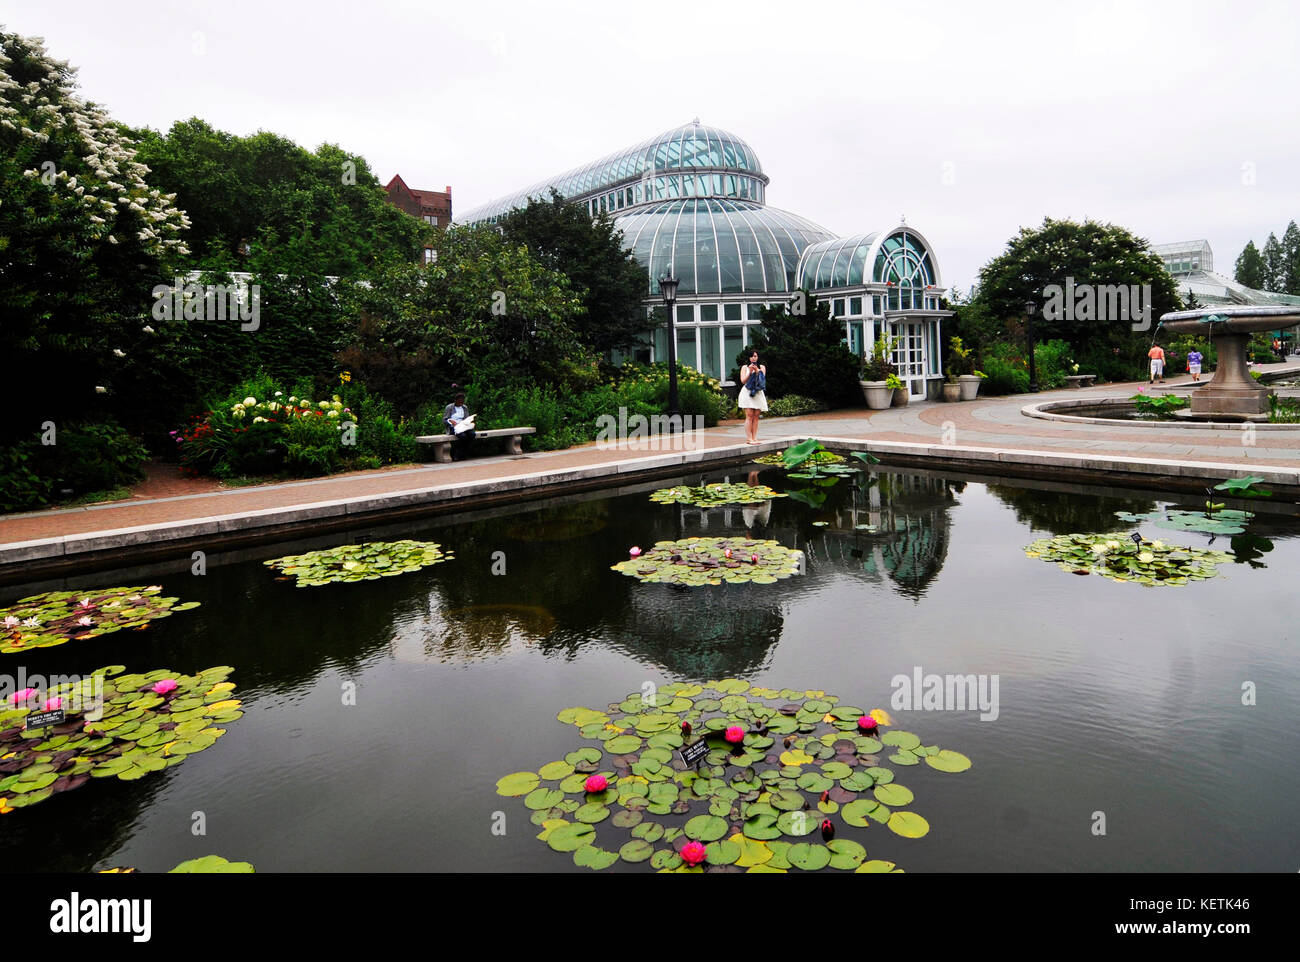 Is there parking at brooklyn botanical gardens garden ftempo for Brooklyn botanical garden parking